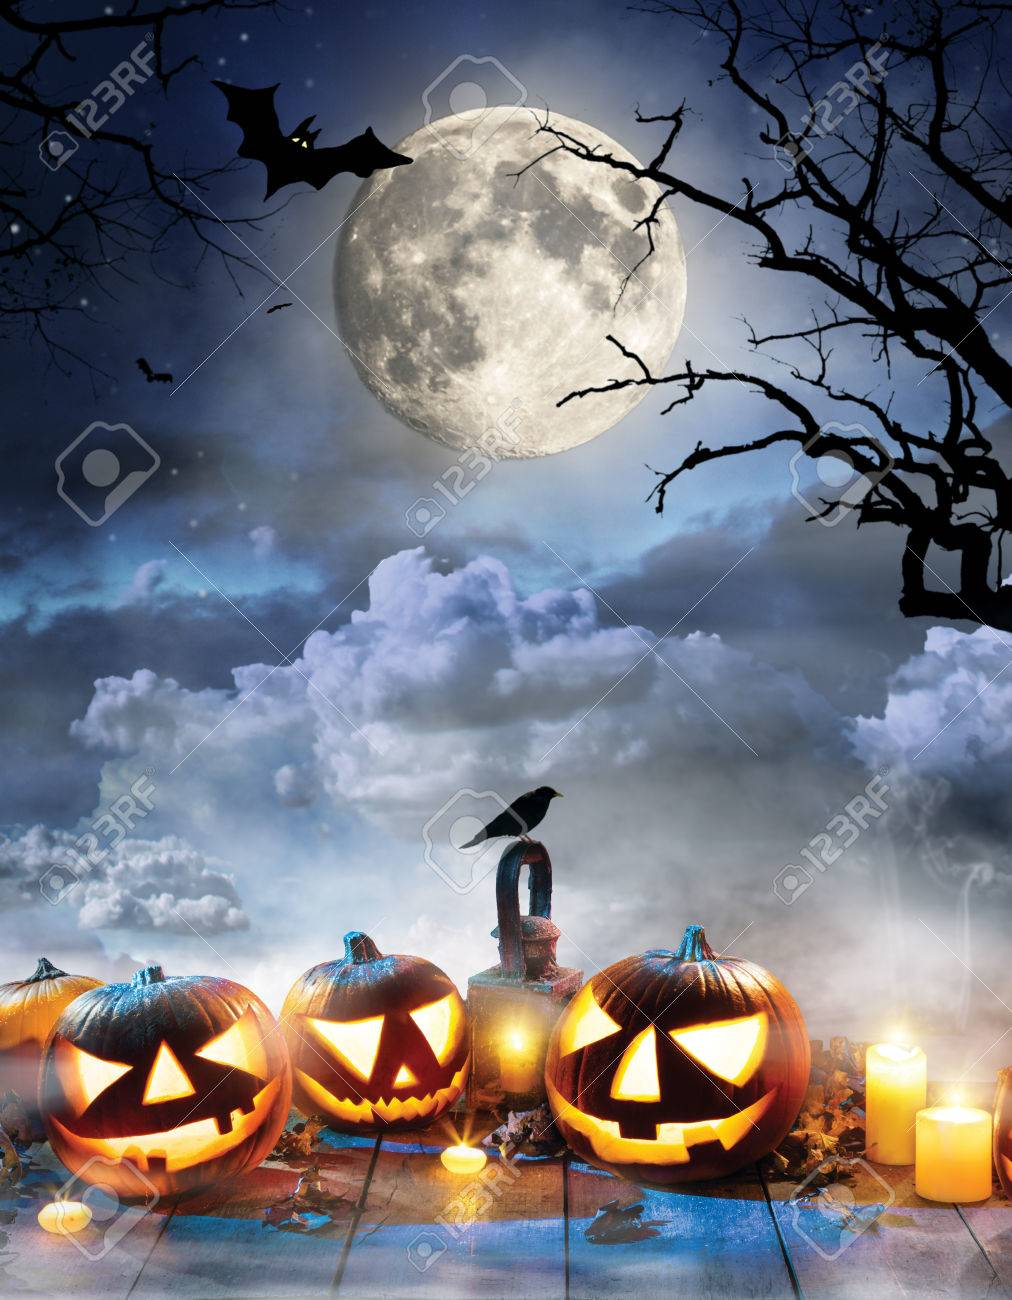 Halloween Spooky Pictures.Spooky Halloween Pumpkins On Wooden Planks With Dark Horror Background